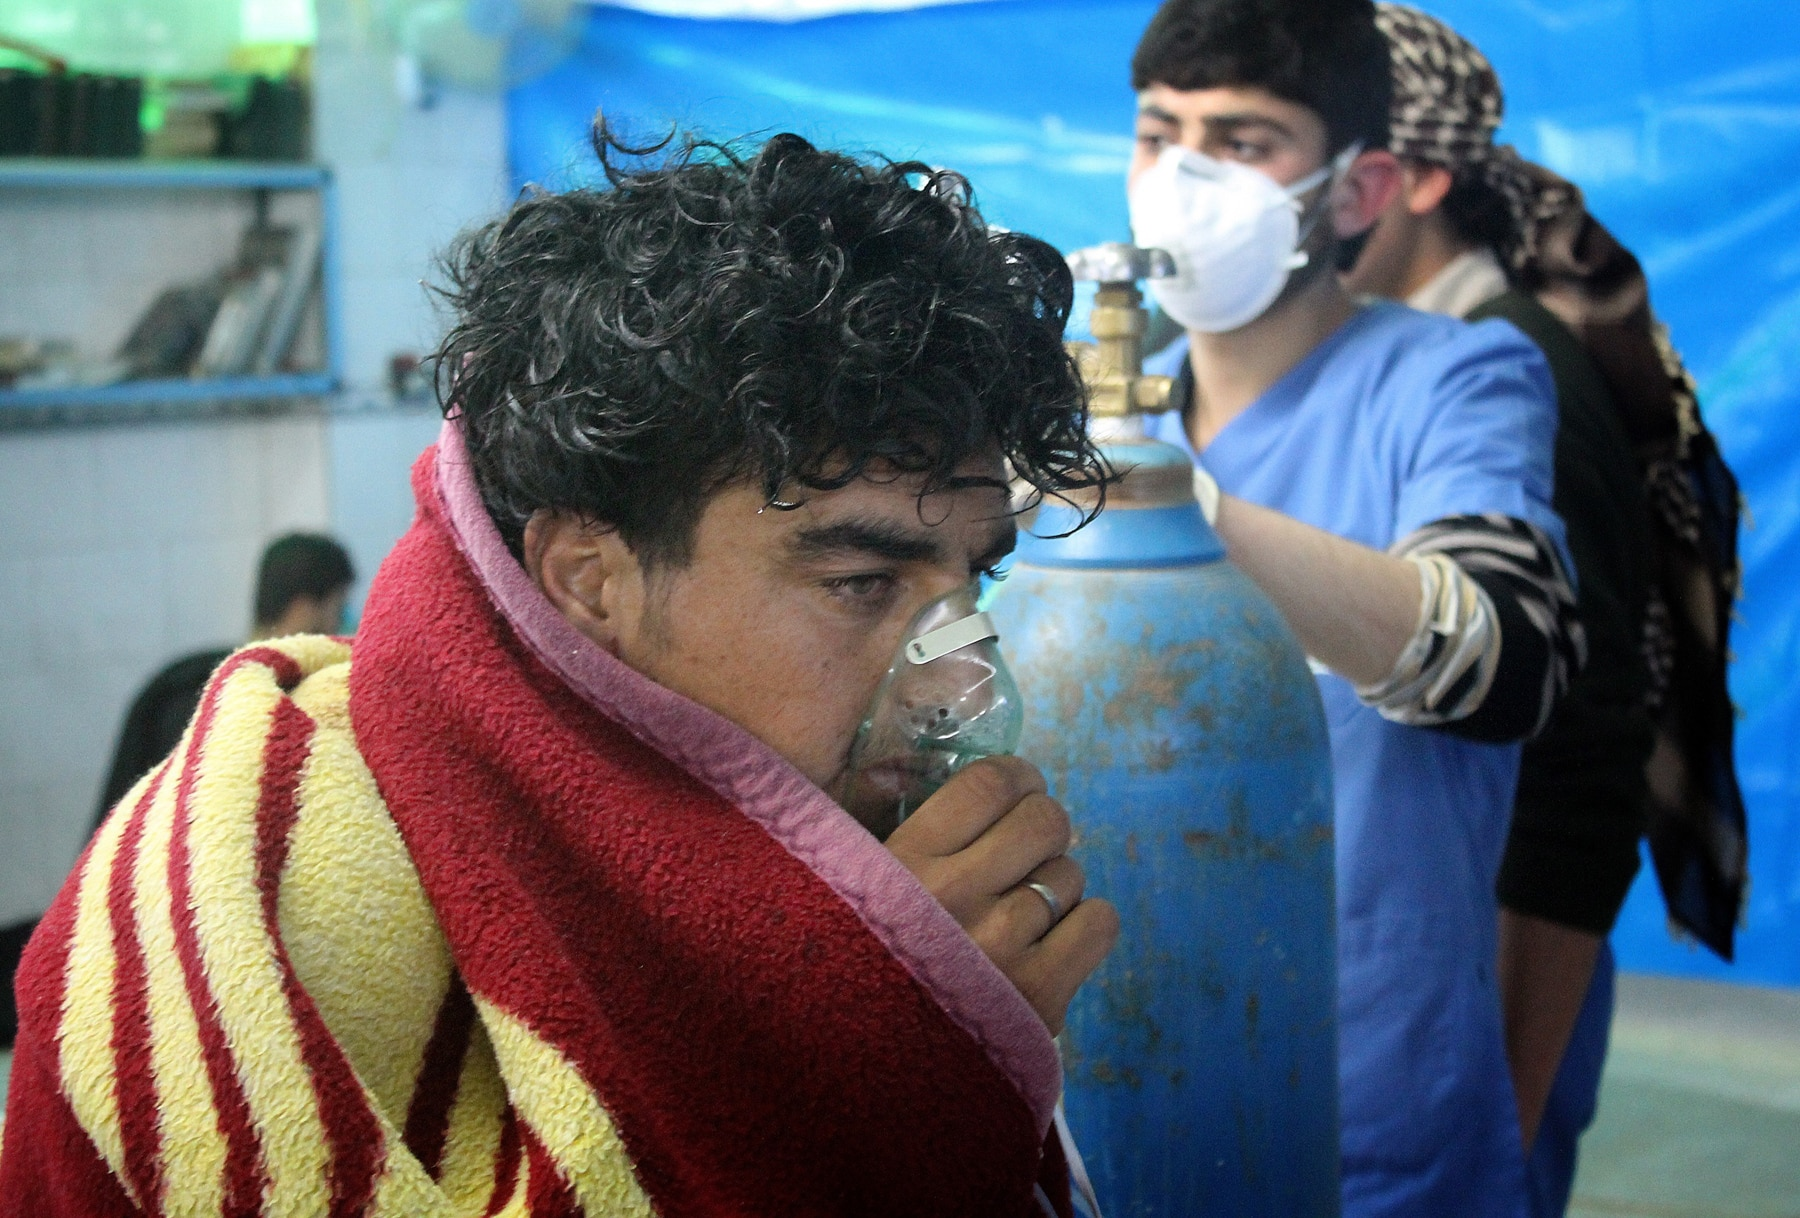 Syrian man receiving oxygen following a chemical attack (© Getty Images)